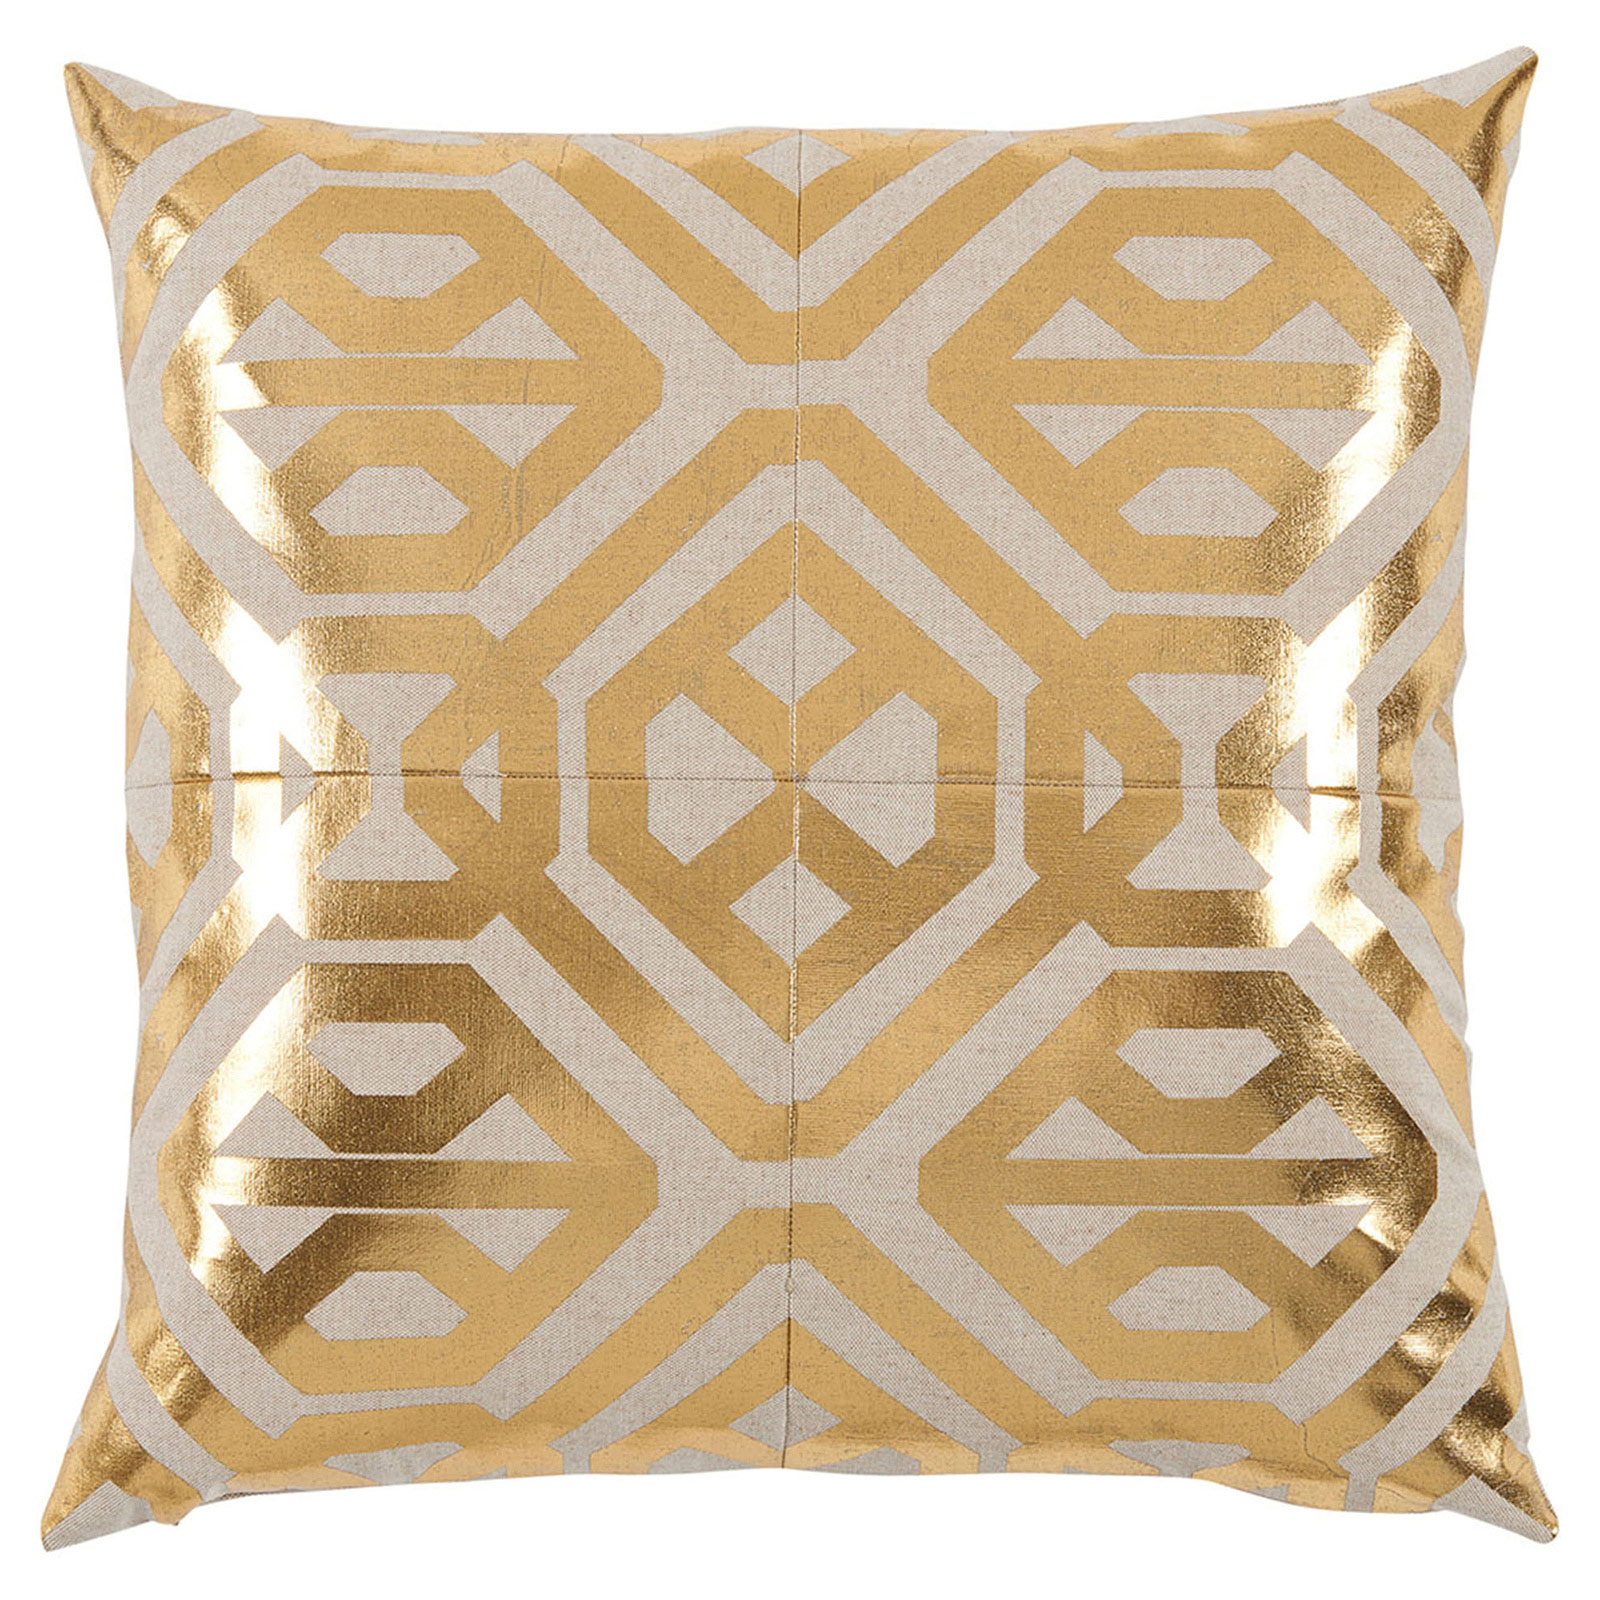 Kelly Regency Metallic Gold Geometric Beige Pillow - 20x20